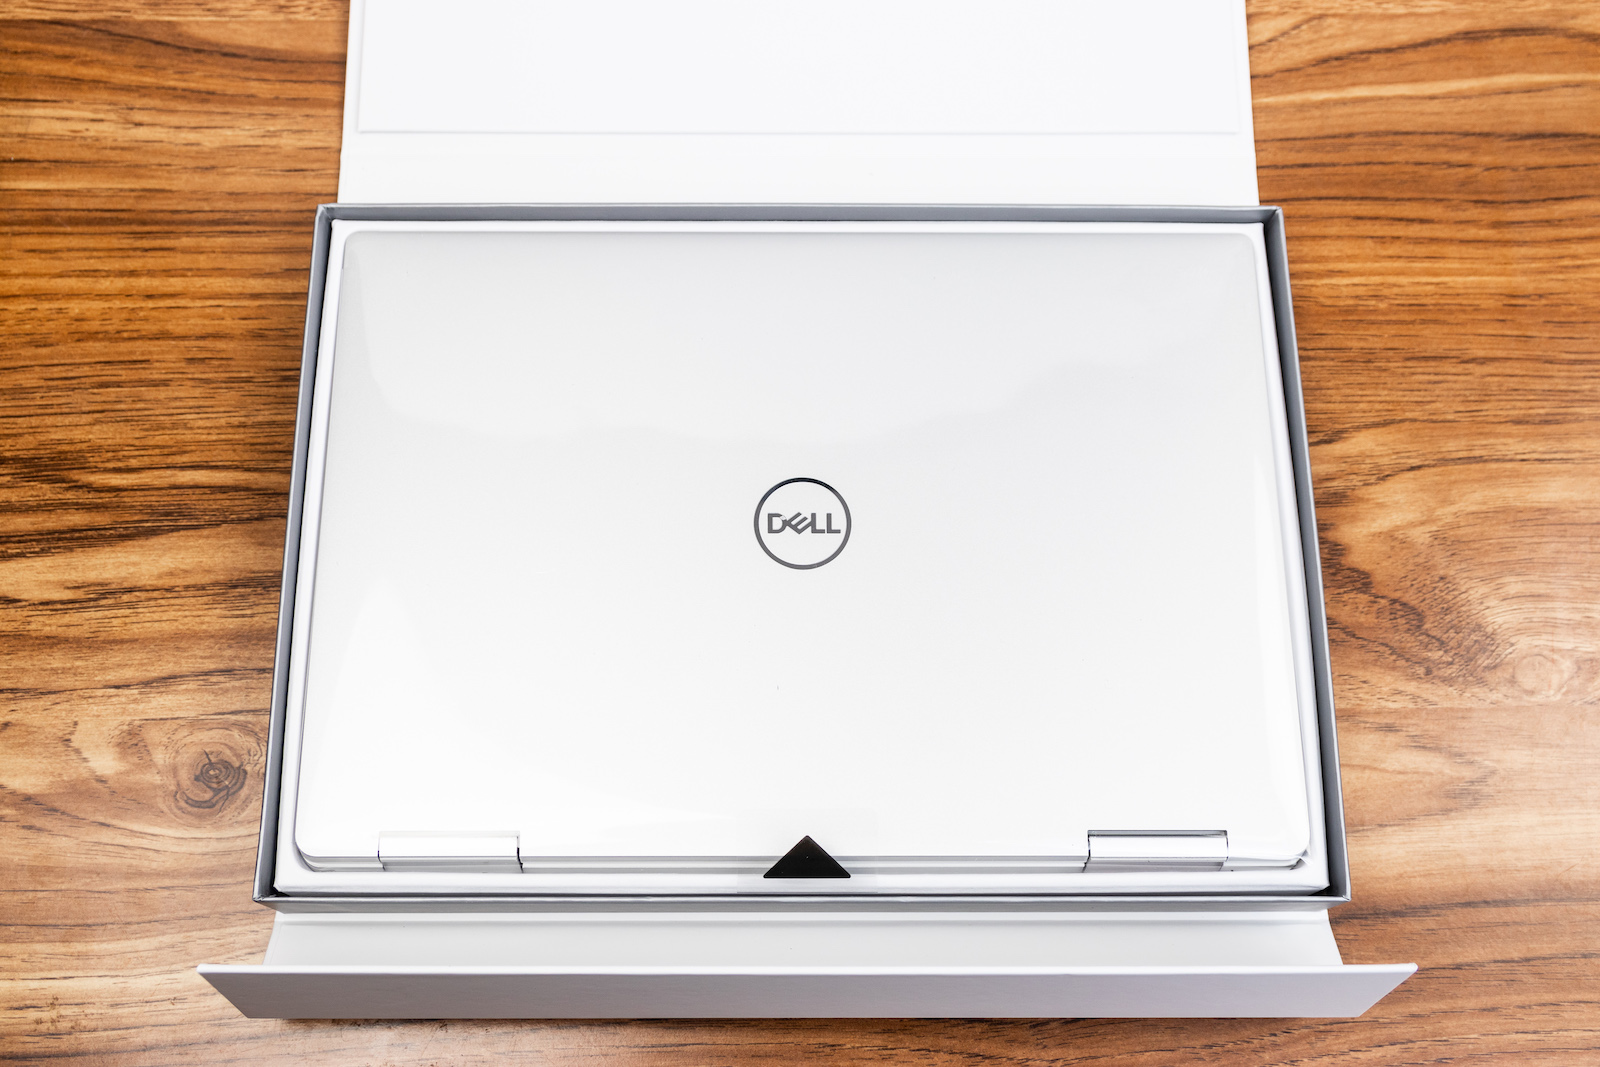 Dell XPS 13 2-In-1 (2019) Review: A Near-Perfect Intel 10th Gen Laptop